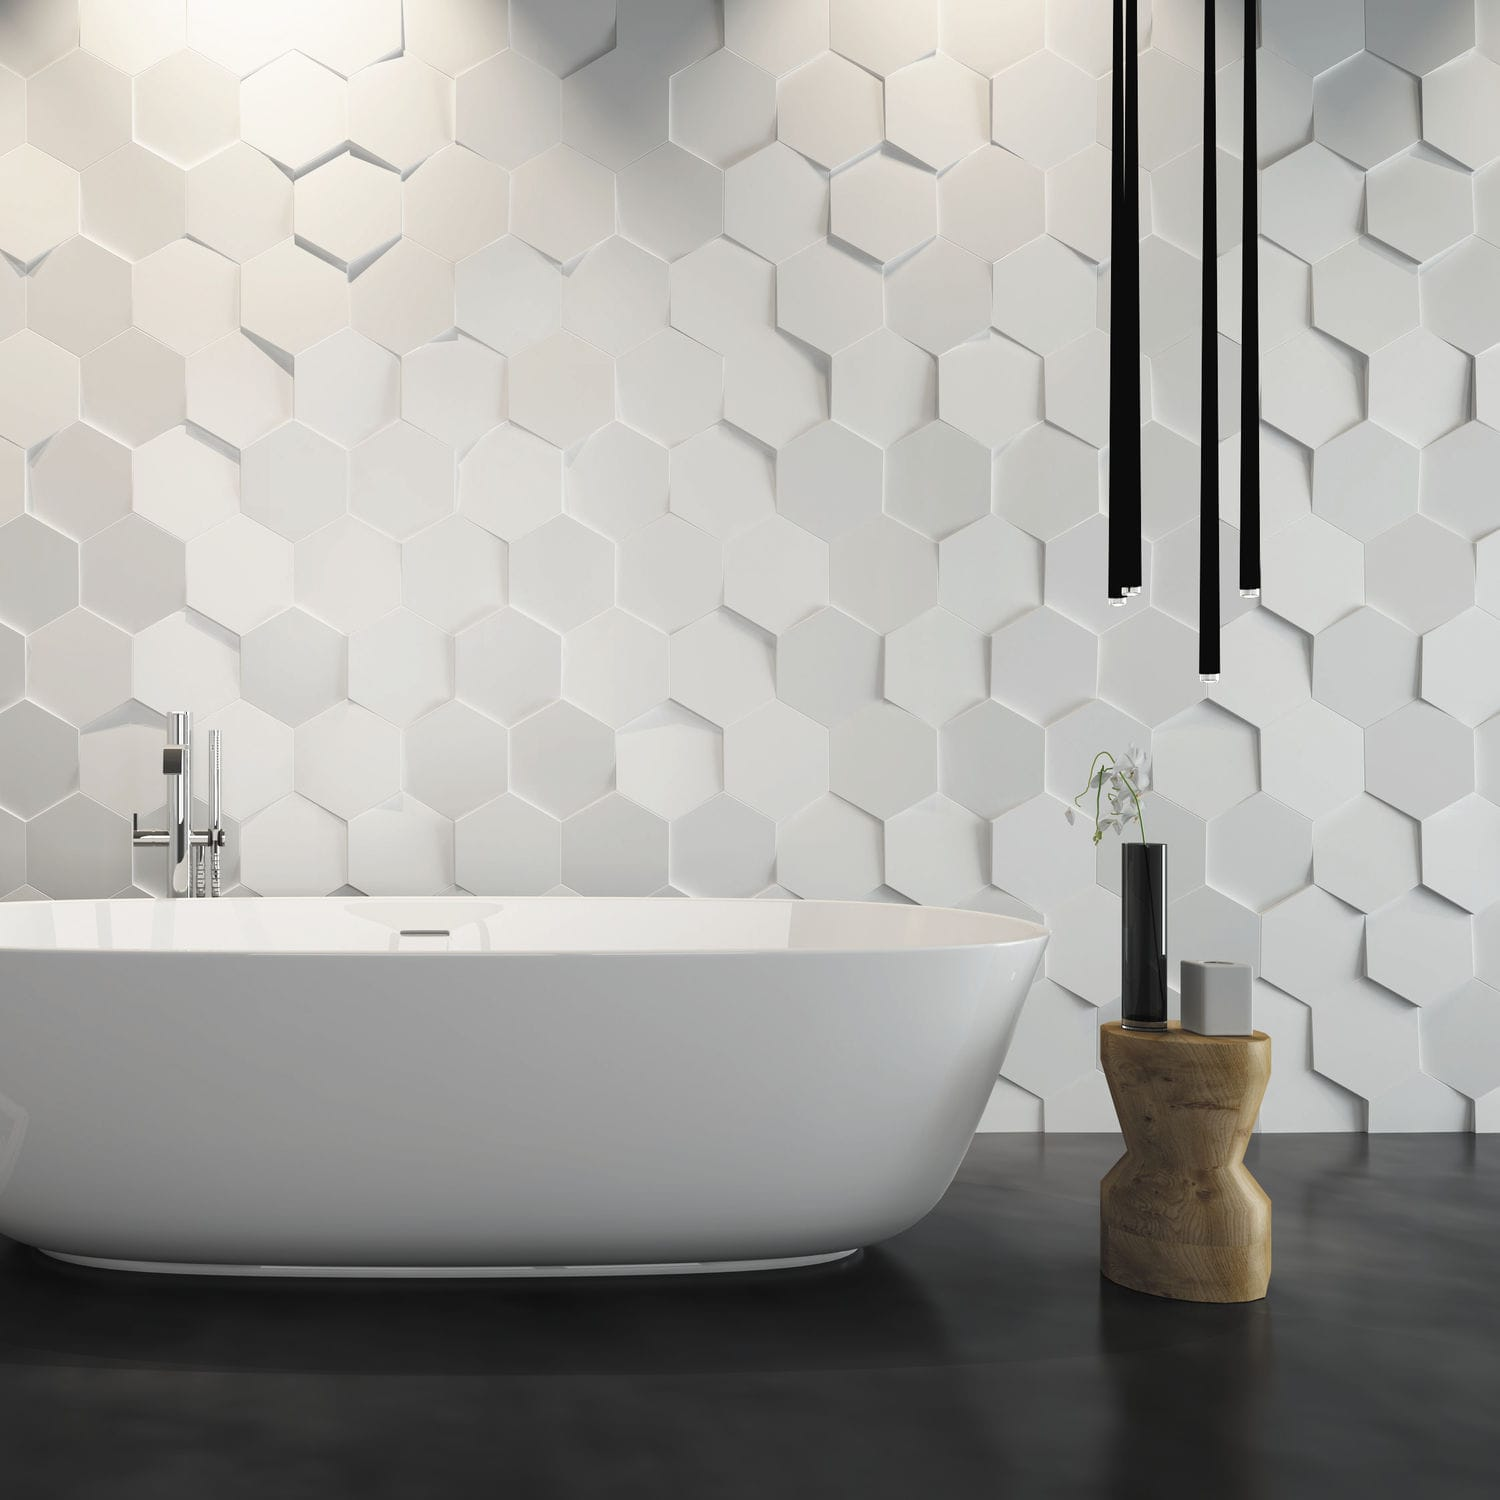 Bathroom Tile Wall Texture bathroom tile / wall / ceramic / textured - hexa - wow design eu